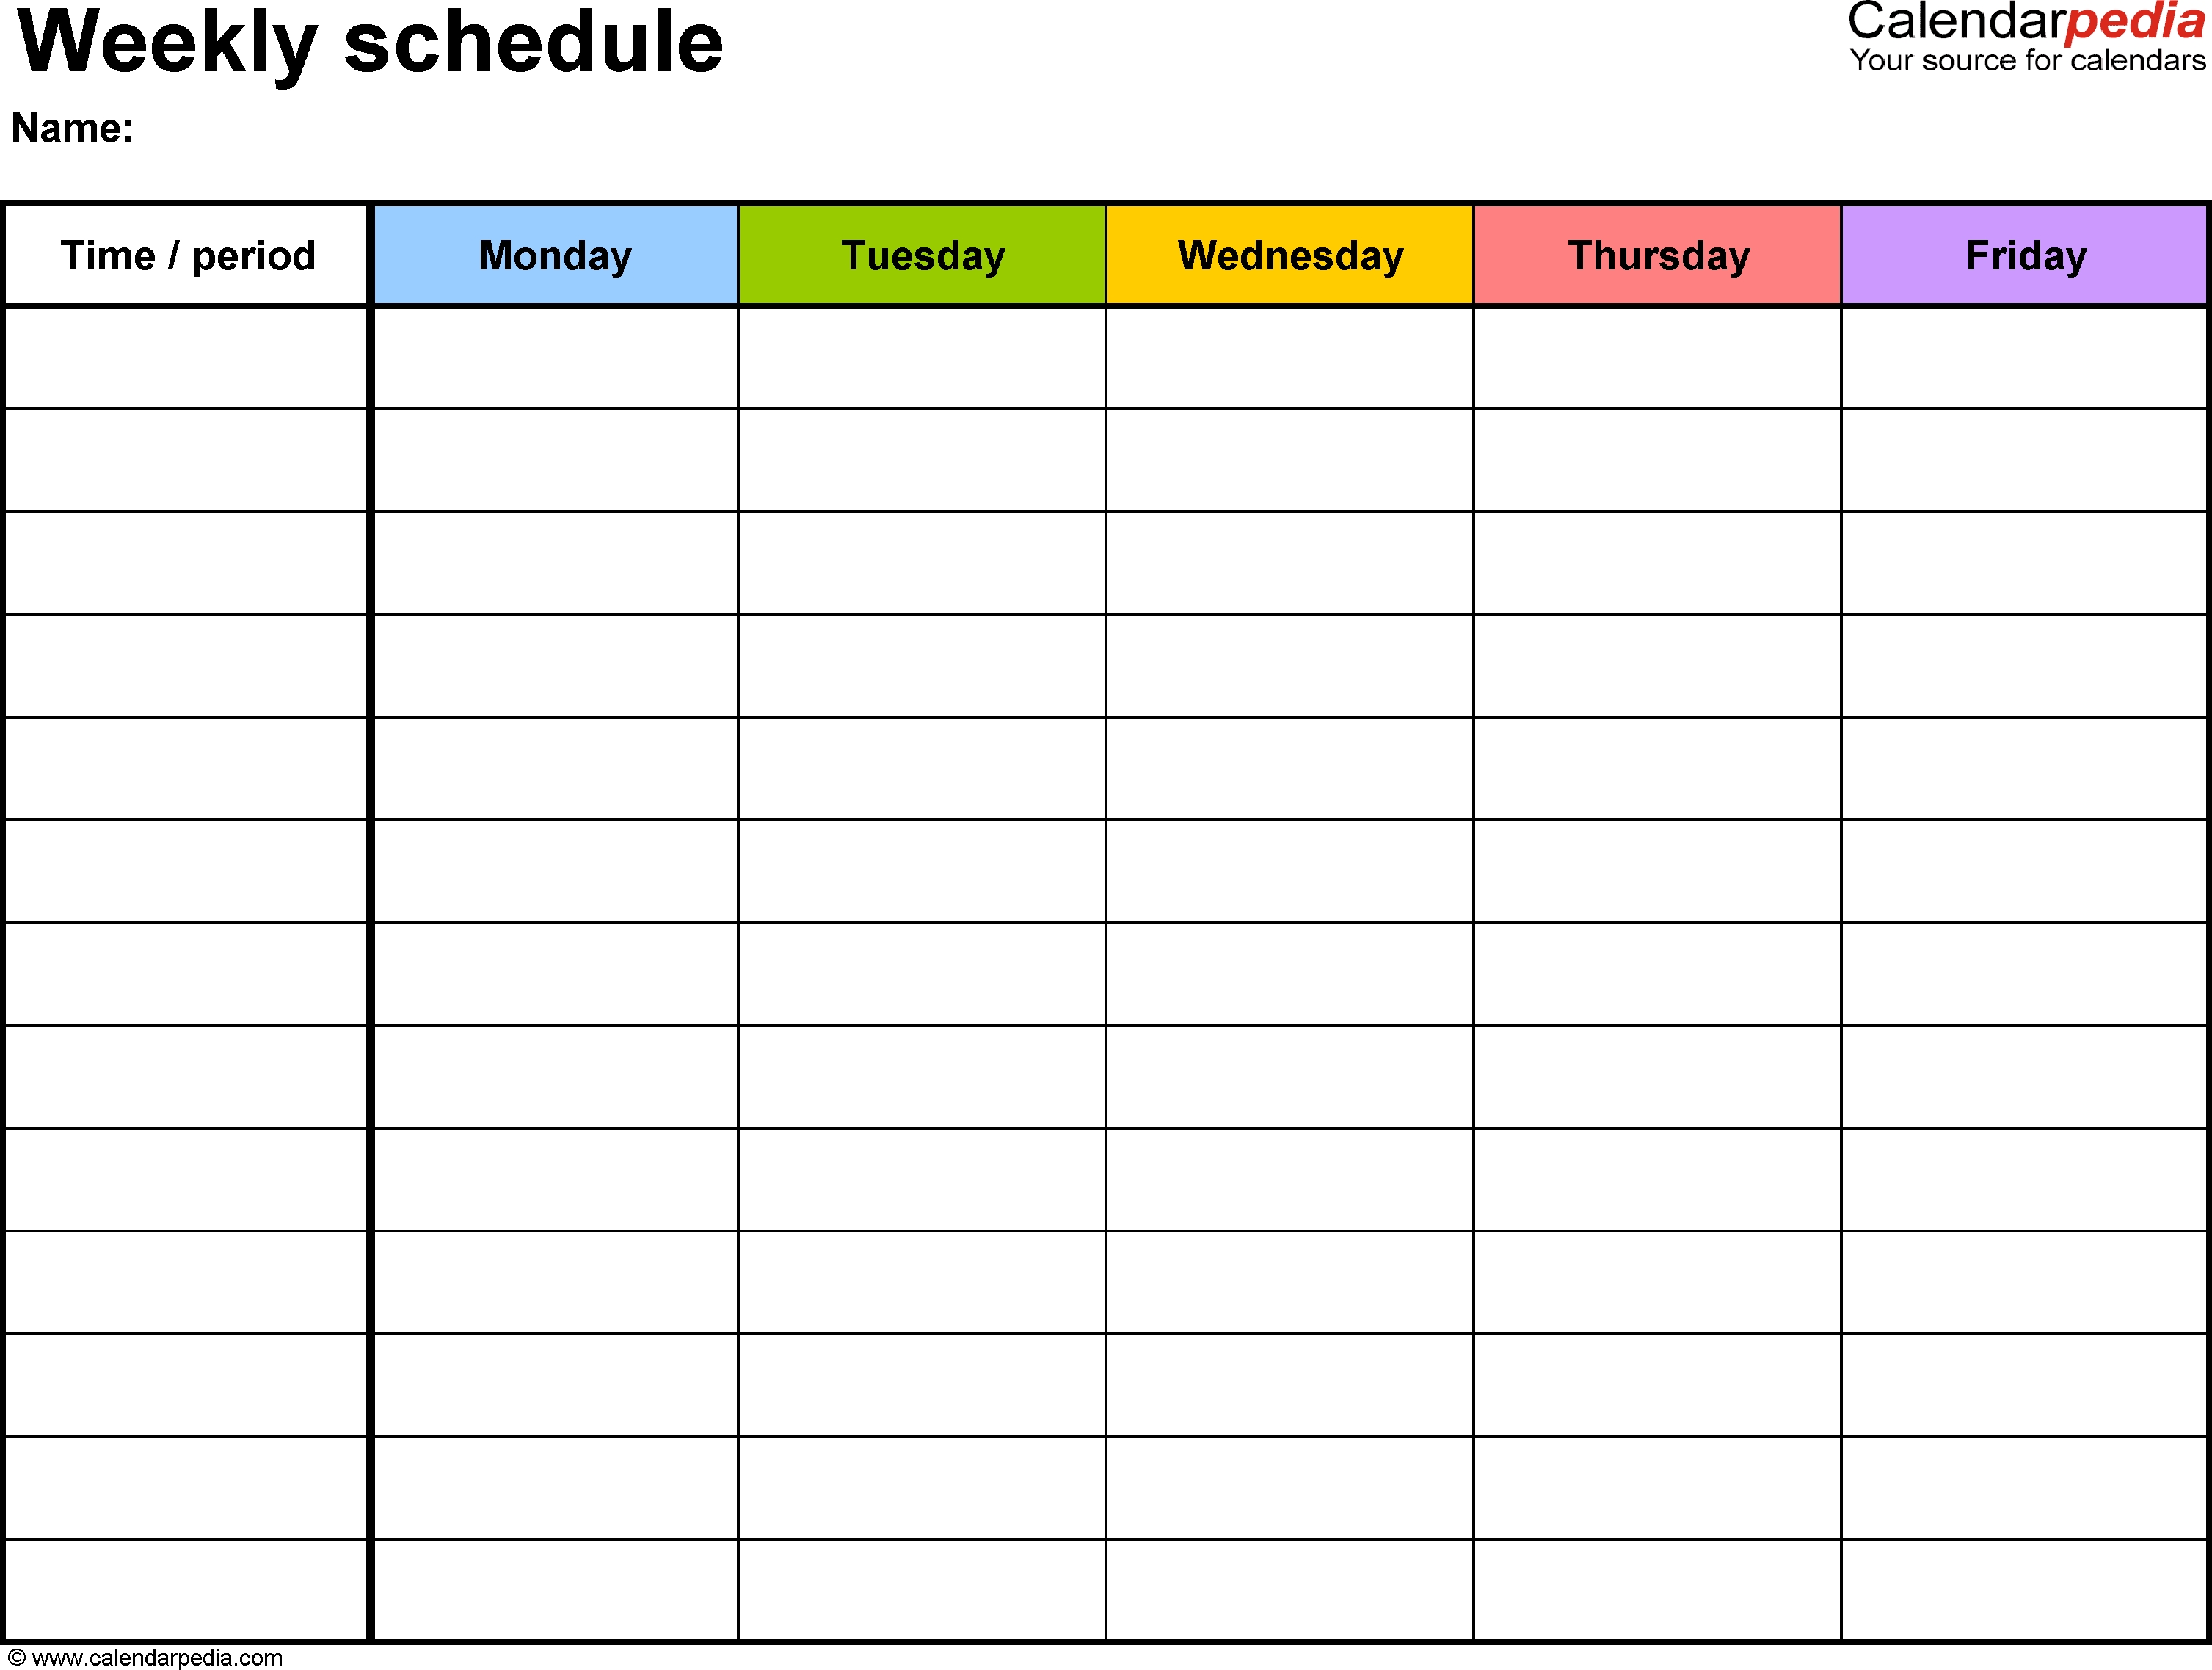 Free Weekly Schedule Templates For Word - 18 Templates pertaining to Monday To Friday Weekly Planner